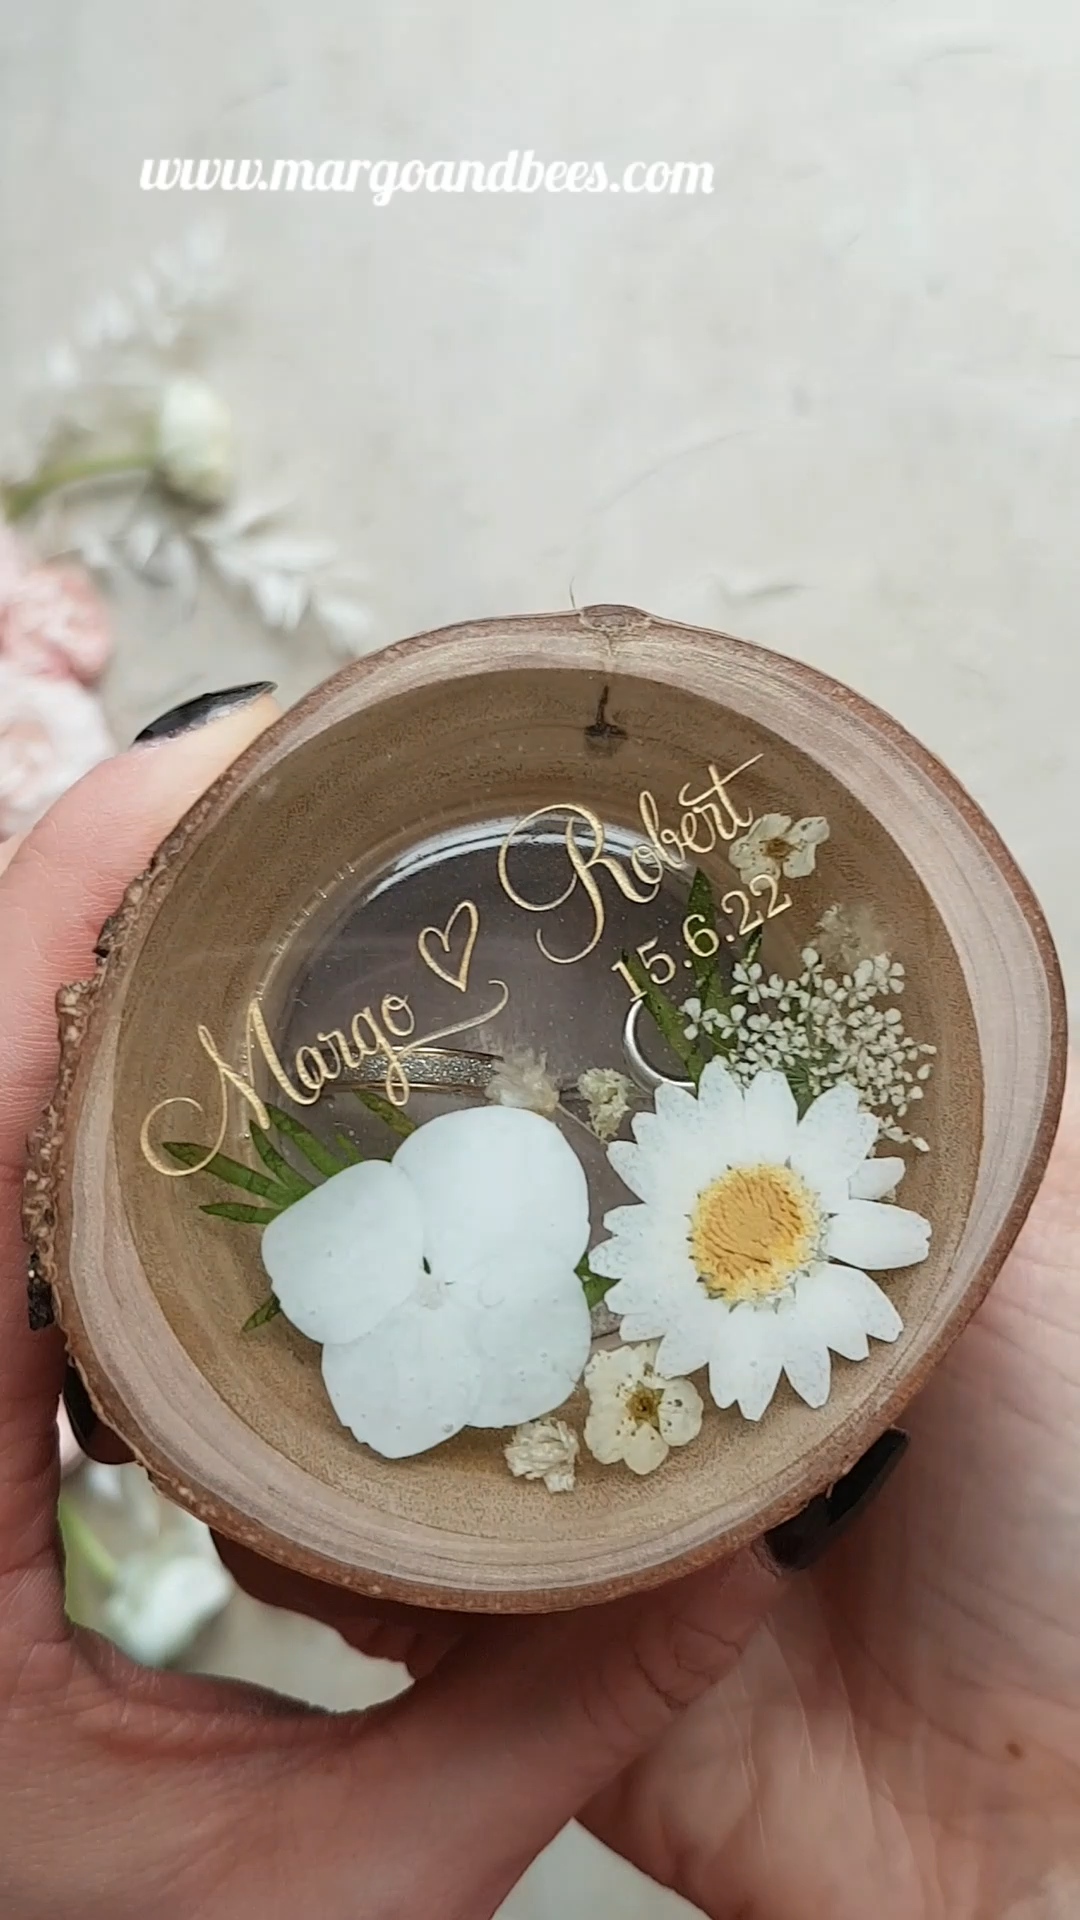 Wedding ring box unique floral design 201/flowerr/box